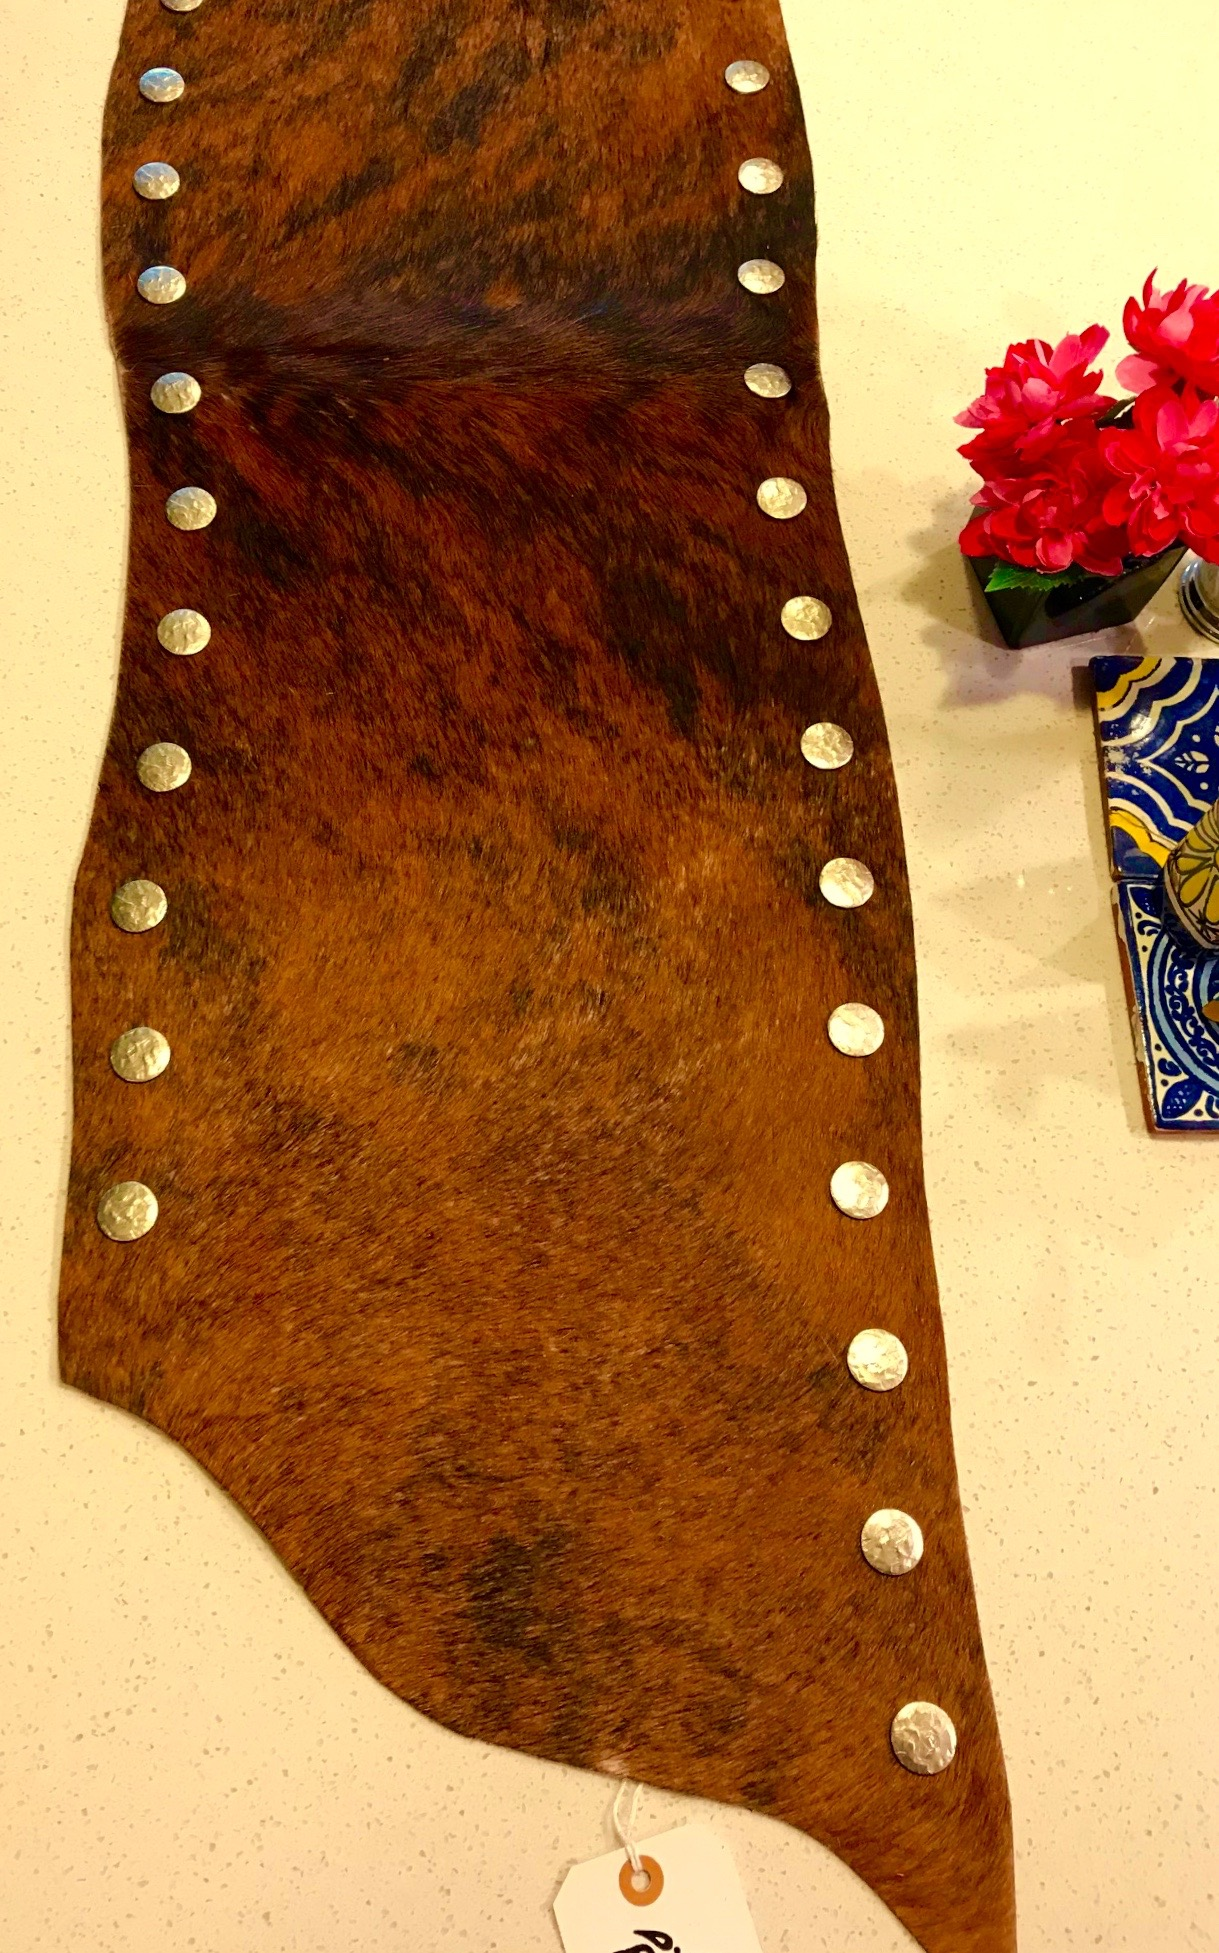 D. Table Runner Of Hair On Hide Cowhide Tanned In Brazil. Theses A Brown